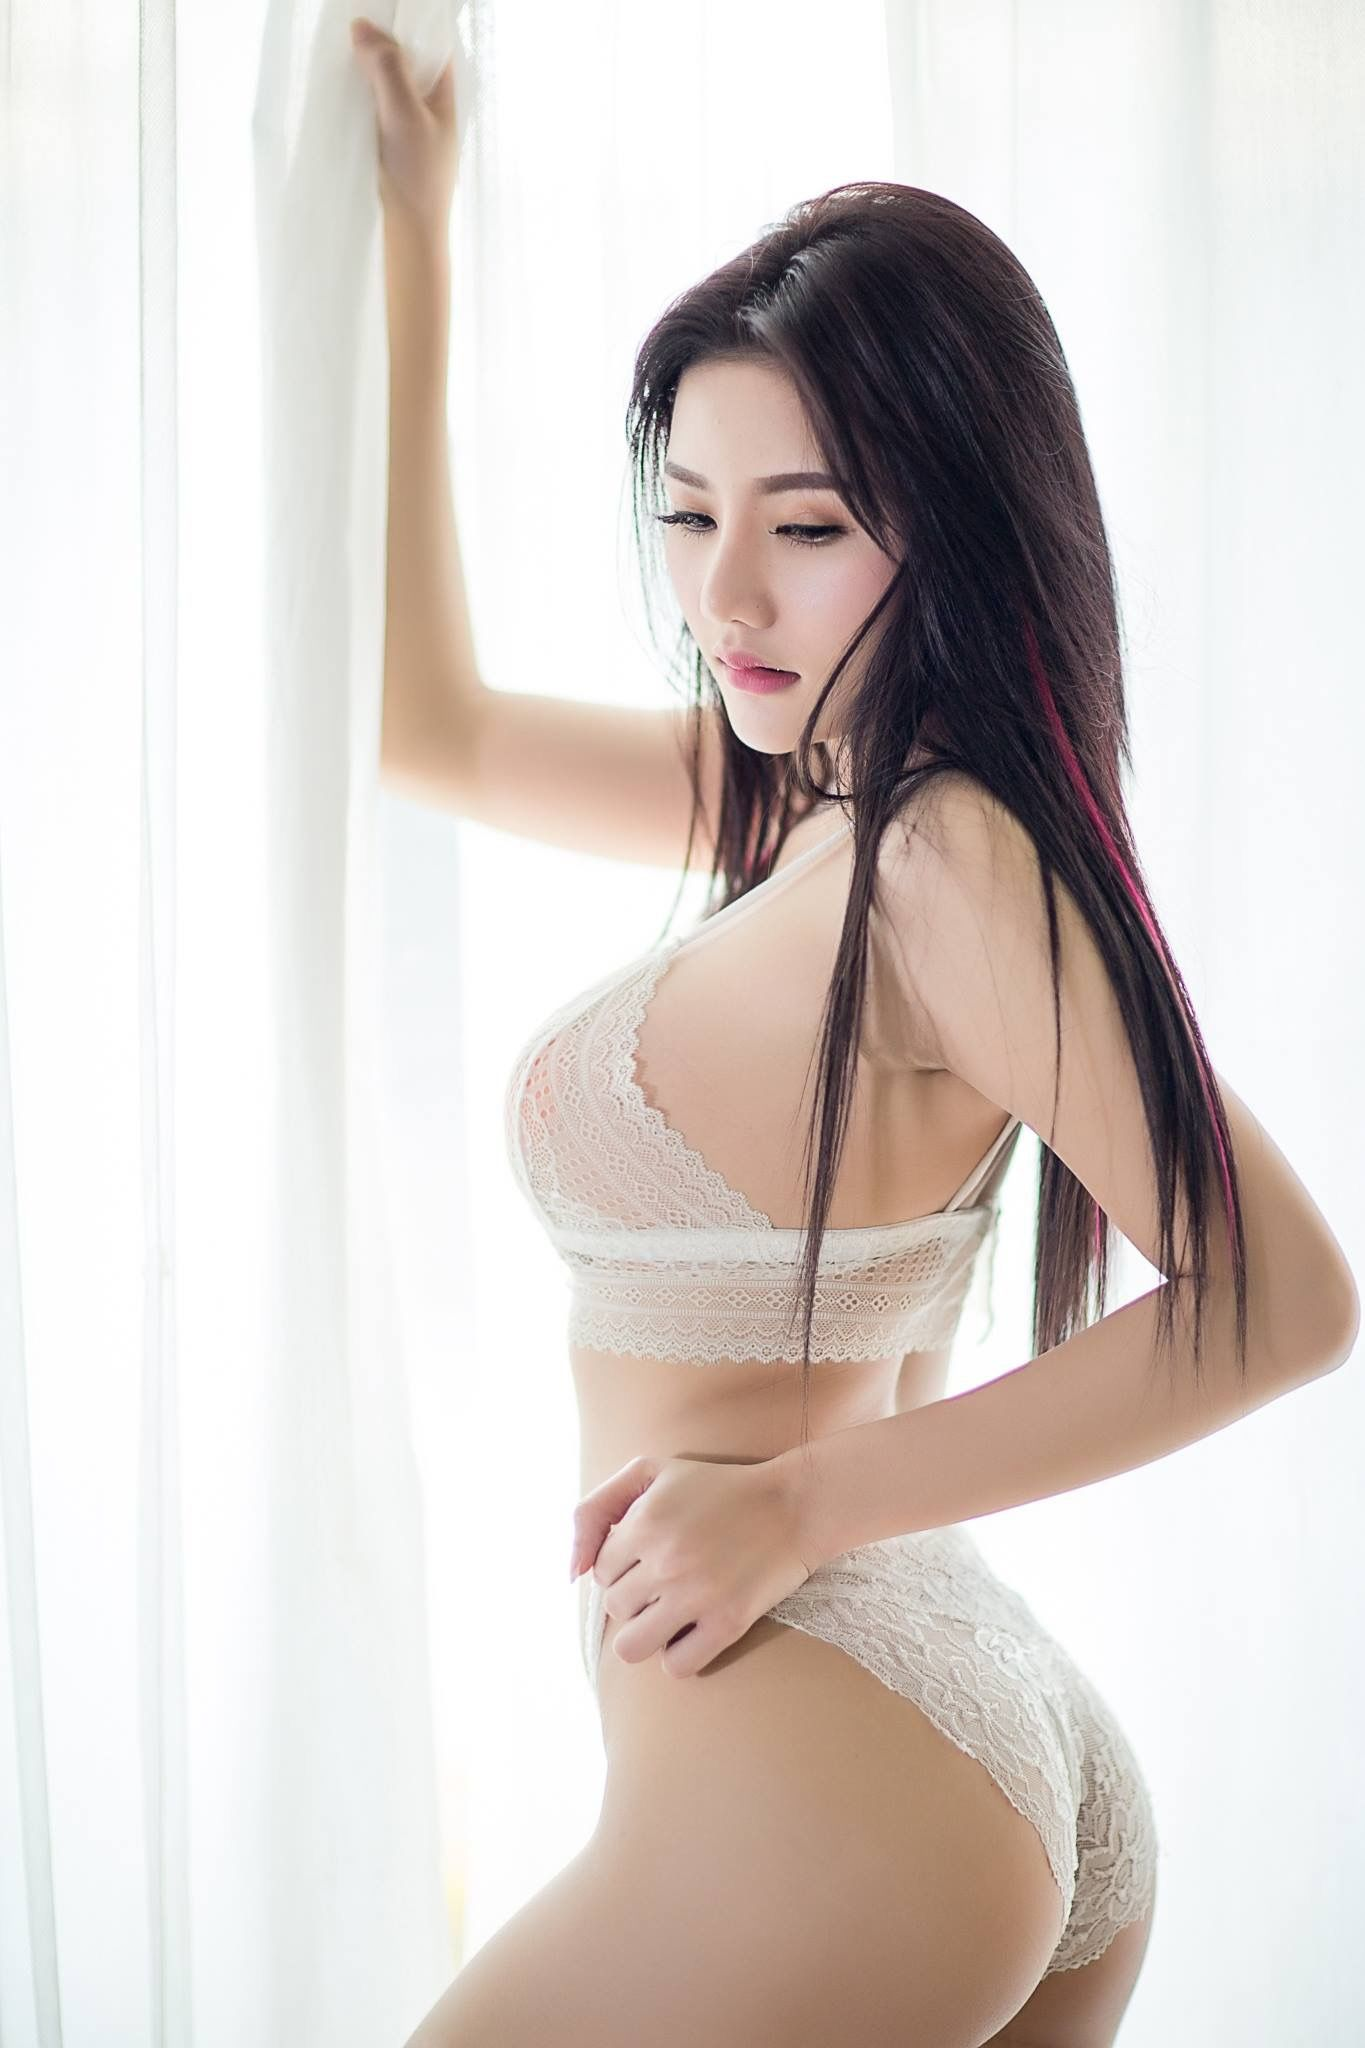 hot lingerie Asian woman